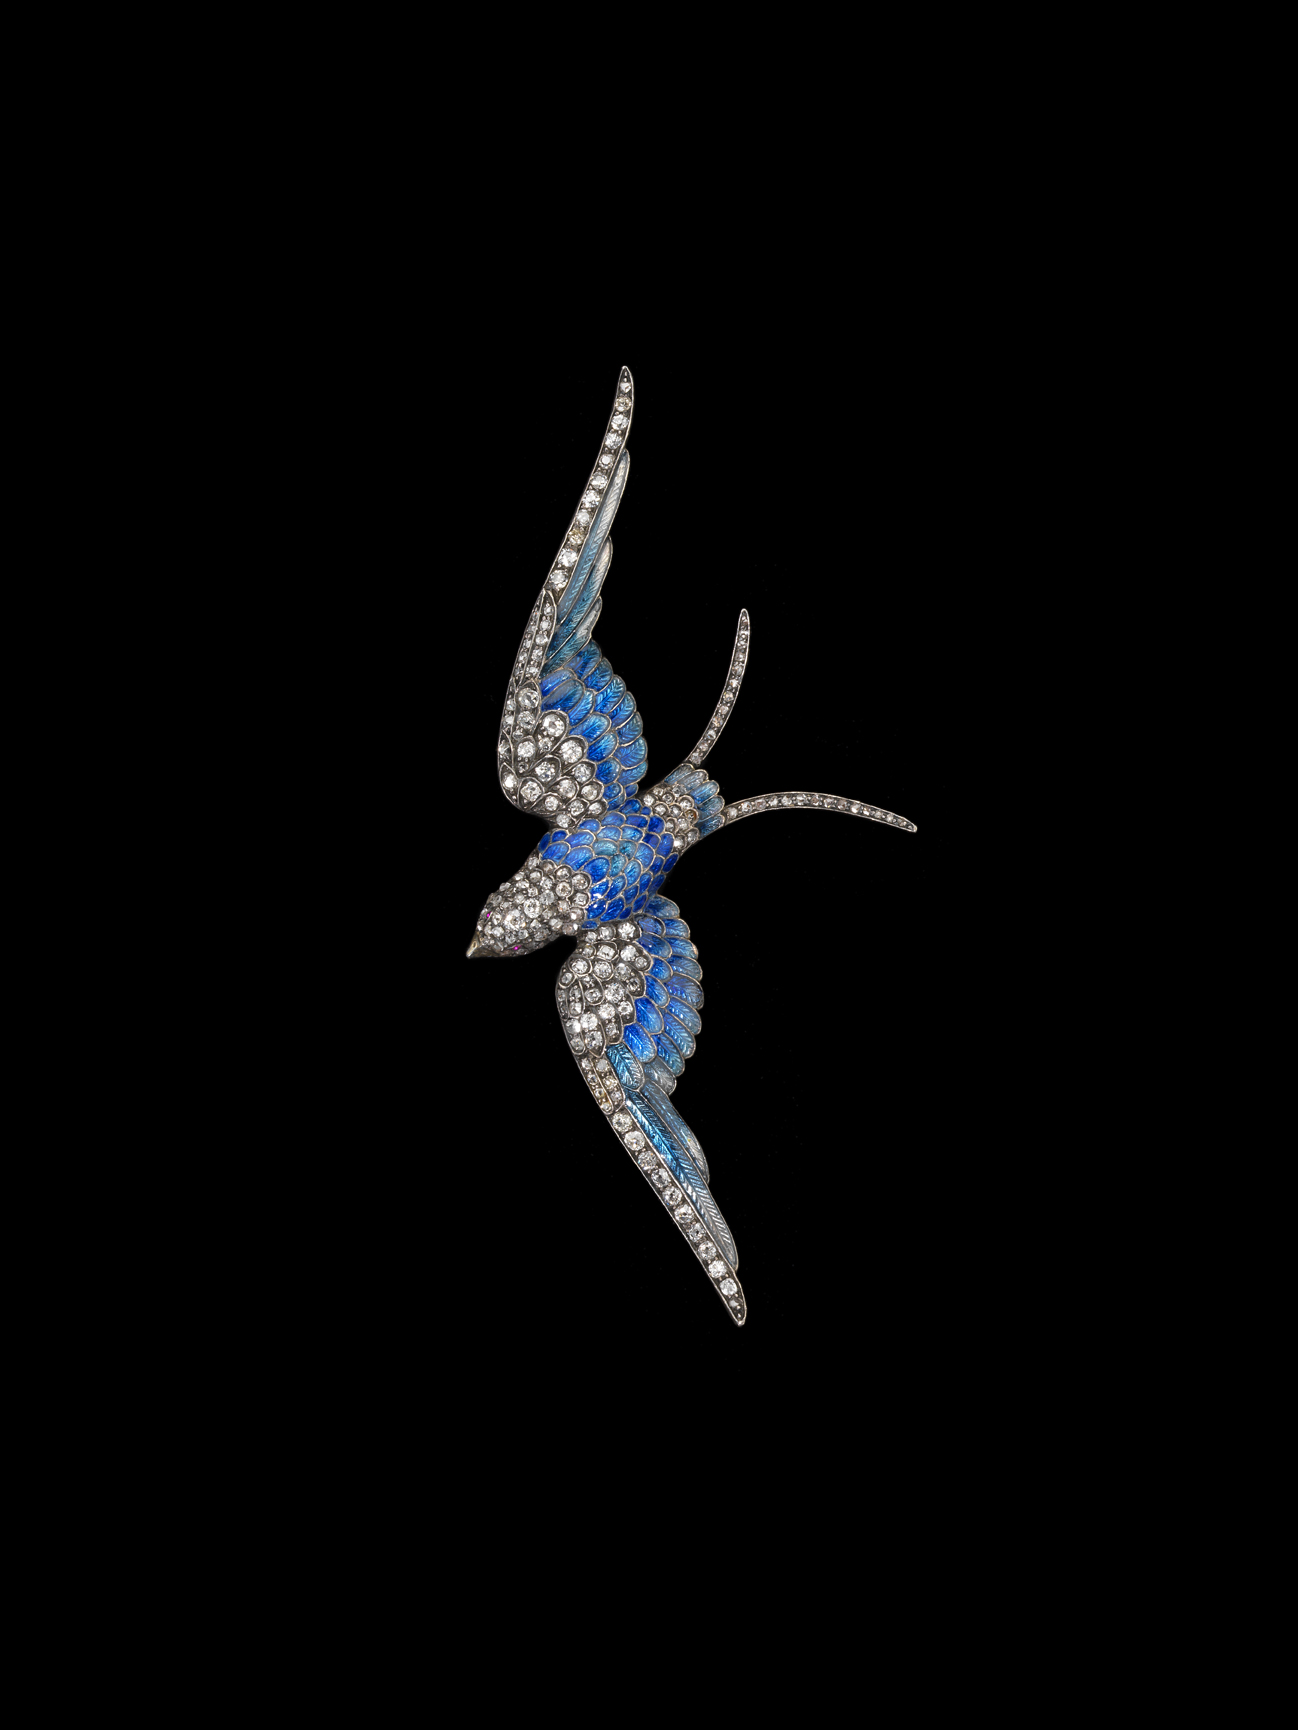 Blue Bird, circa 1880. Anton Lachmann, Austria. Photo by JohnBigelow Taylor.Albright wore this blue-bird pin when, in 1996, airplanes carrying four Cuban-Americanfliers were shot down off the coast of Florida.